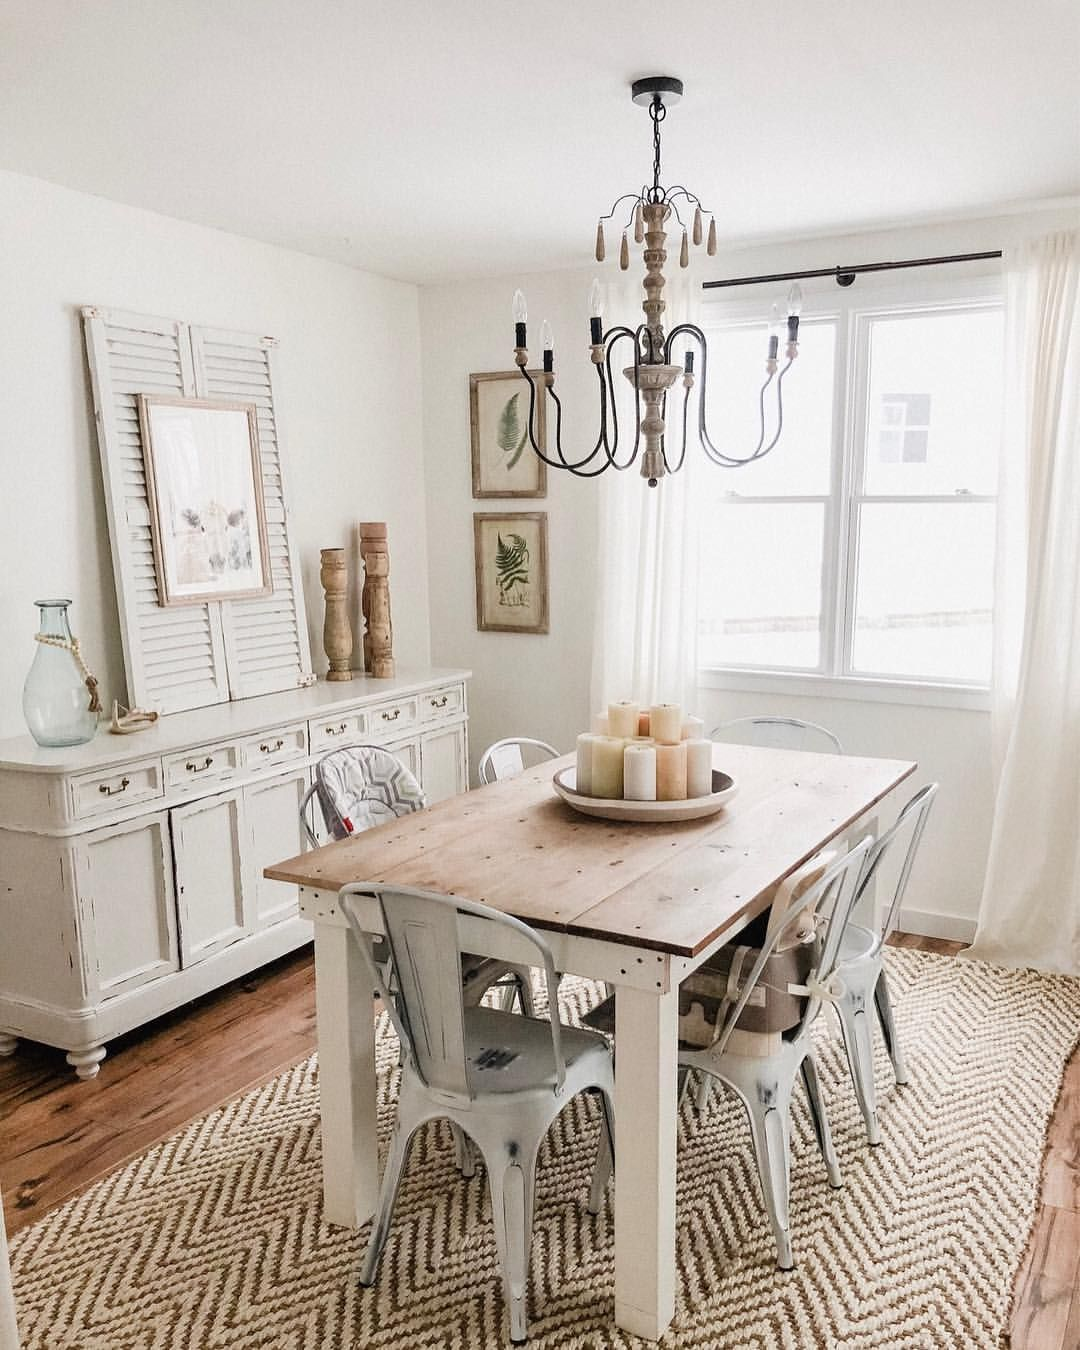 12 Rustic Dining Room Ideas: Pin By Cathy Stevens On Home Ideas In 2019